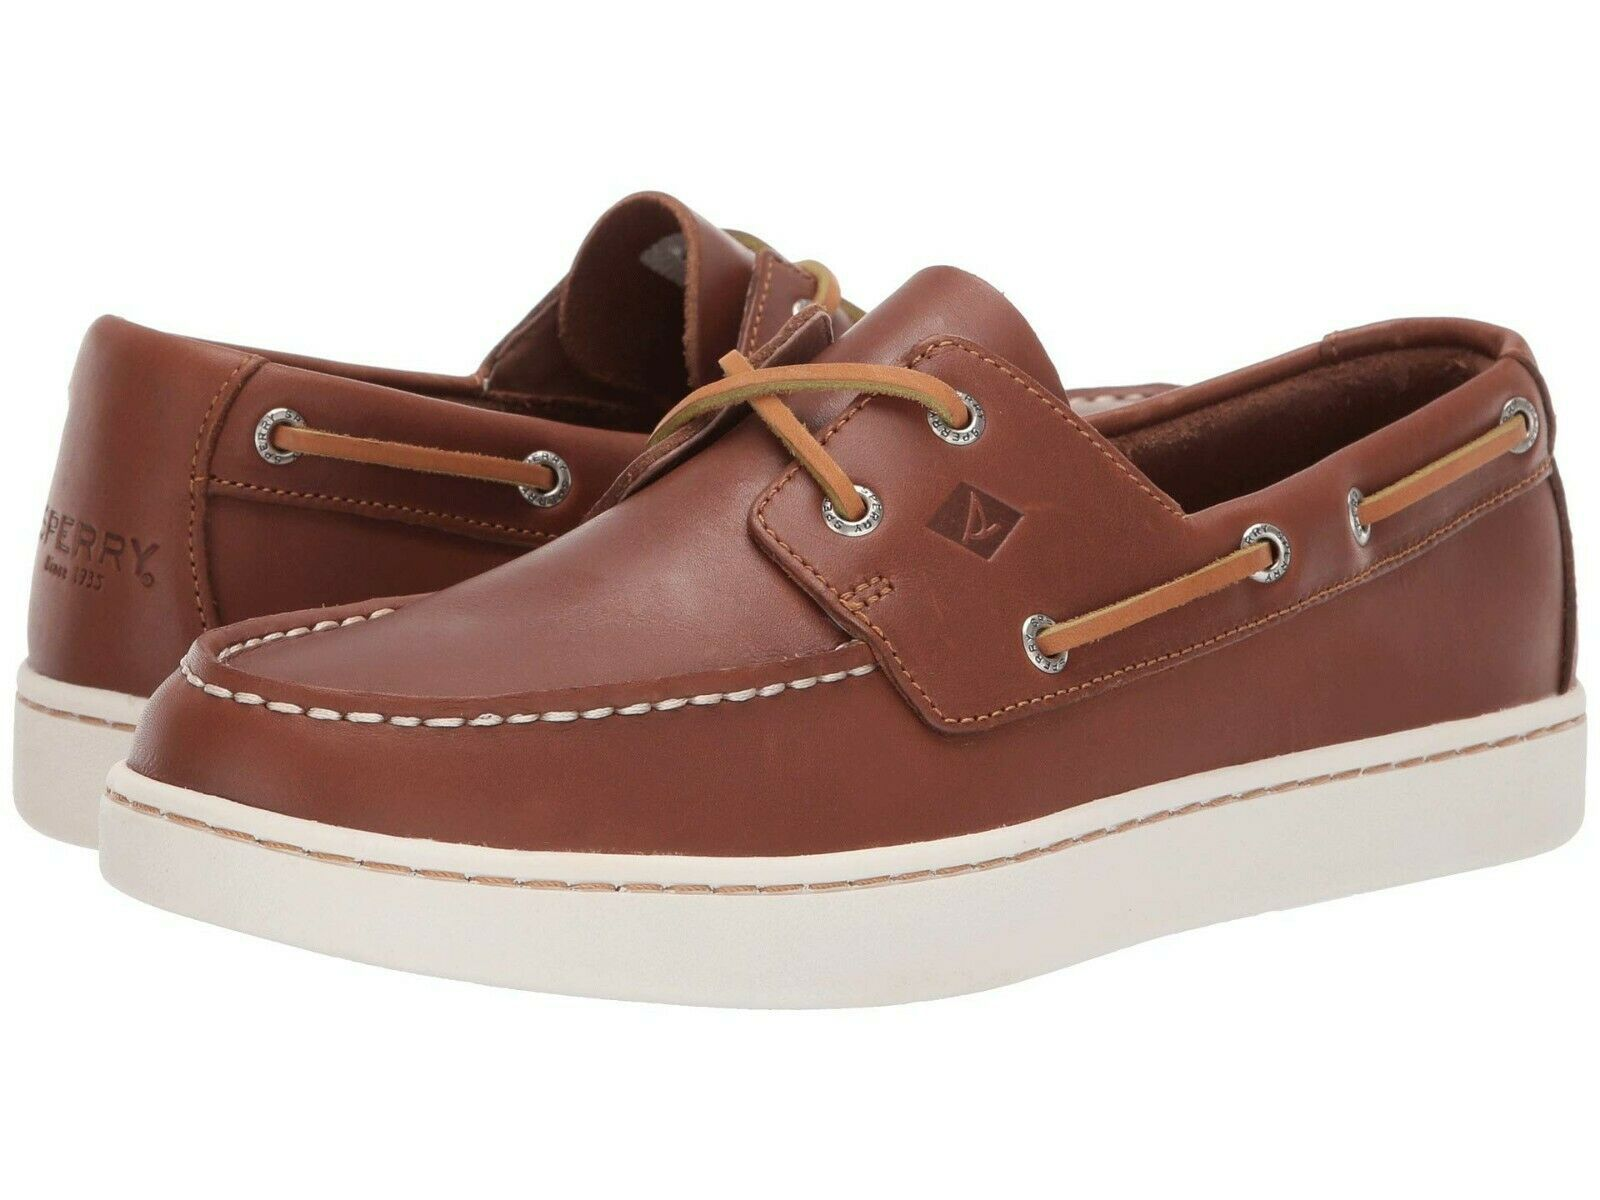 Men's Sperry Top-Sider Cup 2 Eye Leather Oxford, STS18791 Multiple Sizes Tan